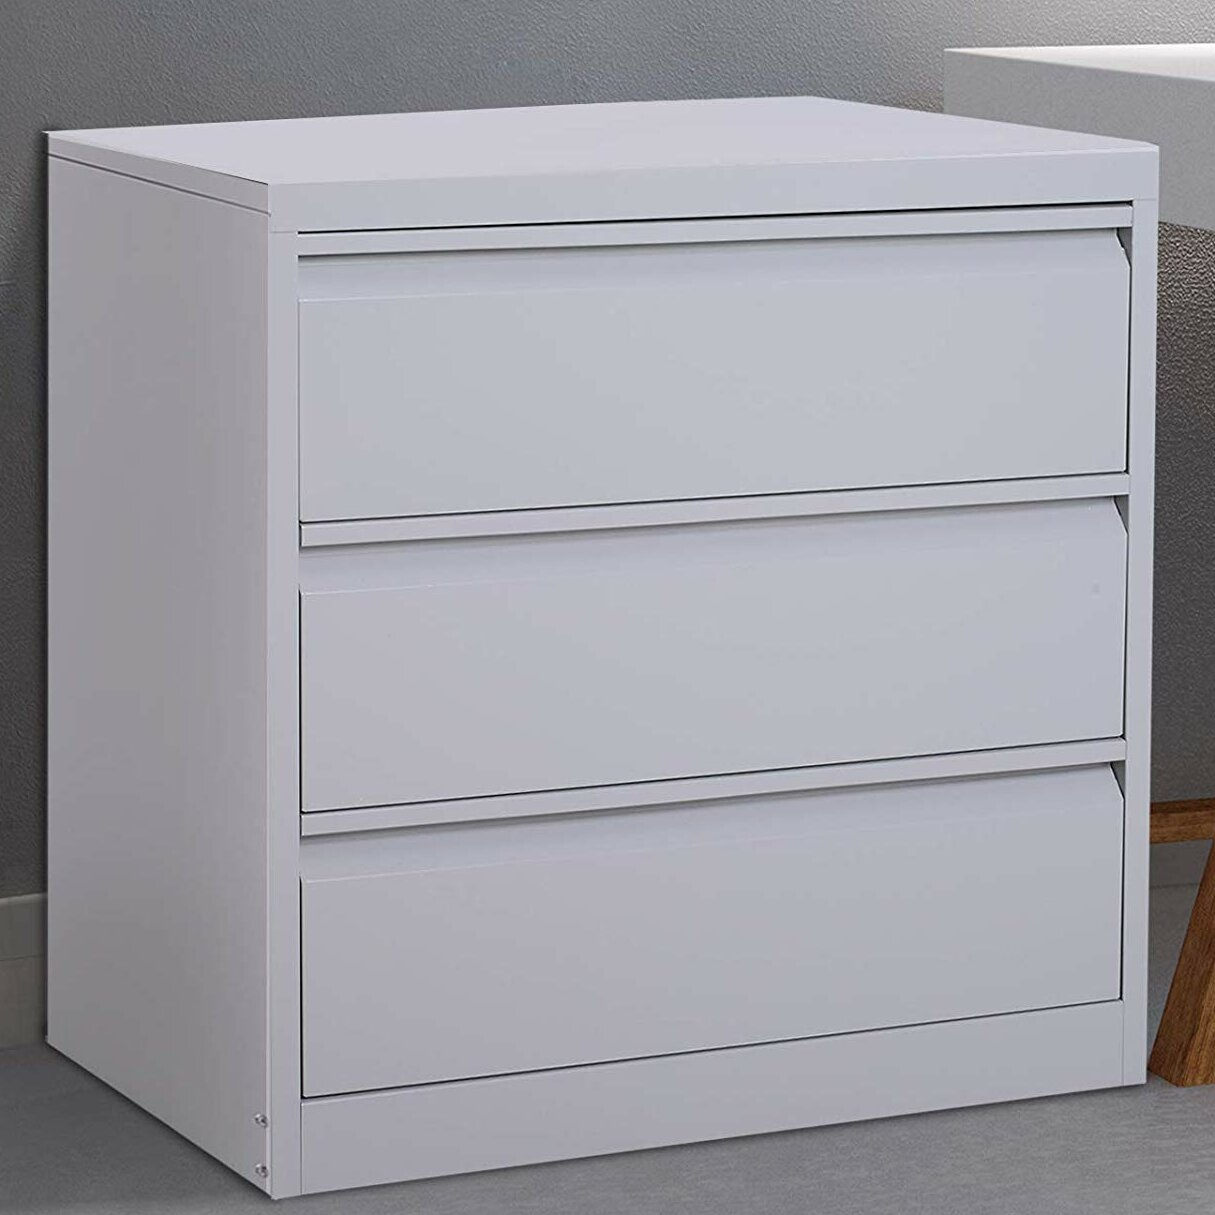 Symple Stuff Tamra Metal 3 Drawer Lateral Filing Cabinet Wayfair within proportions 1215 X 1215